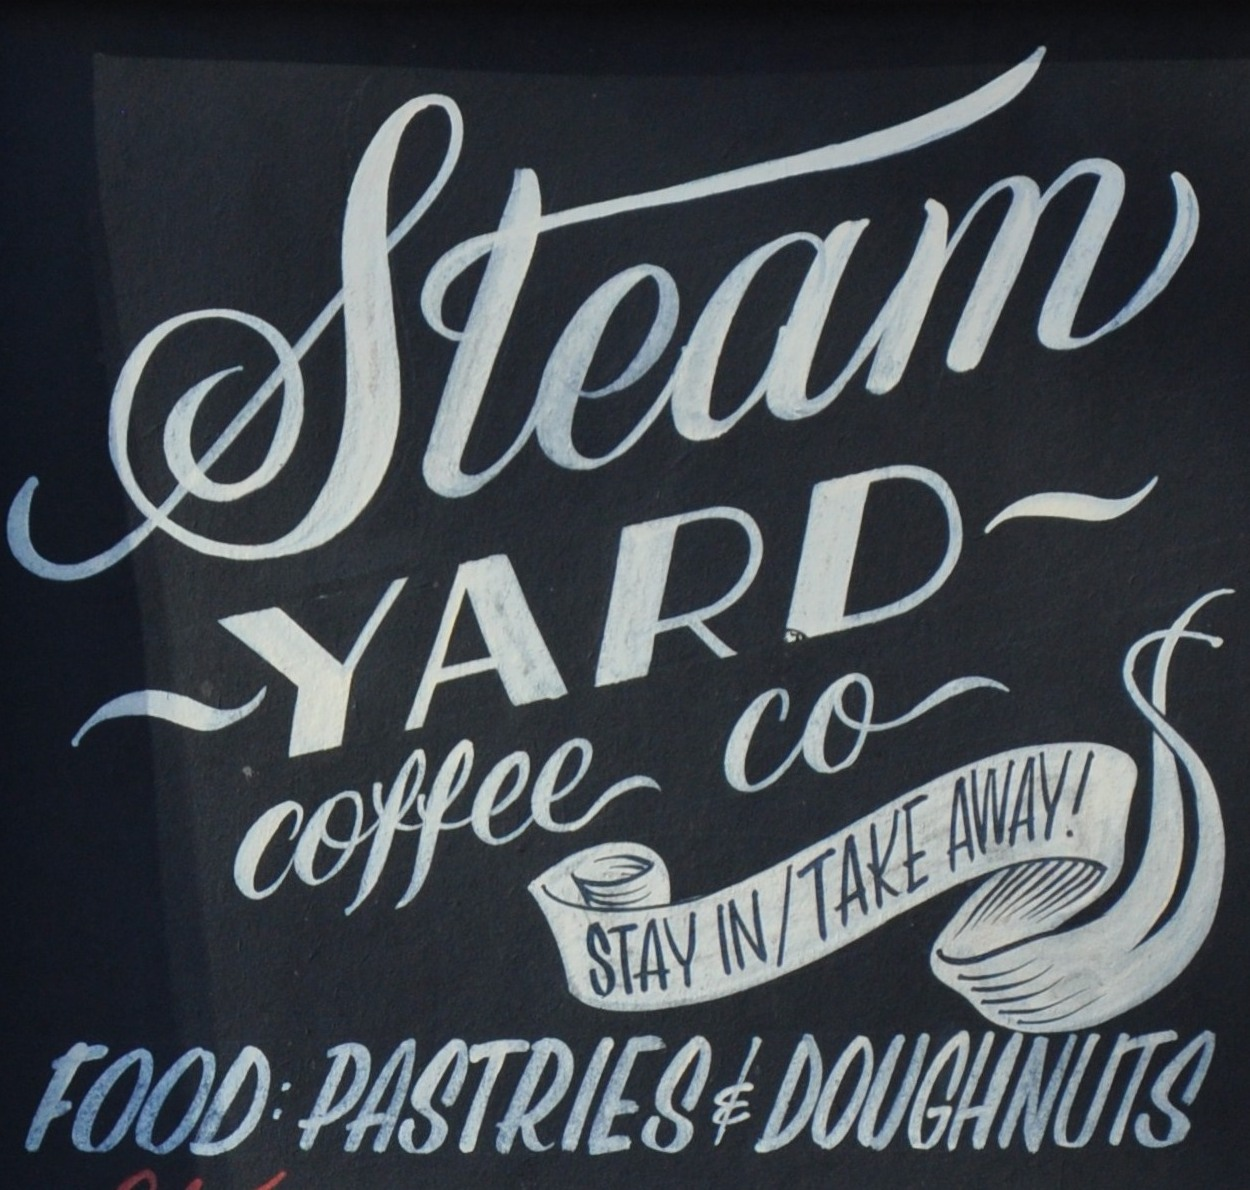 """""""Steam YARD coffee co, stay in/take away, FOOD: PASTRIES & DOUGHNUTS"""""""